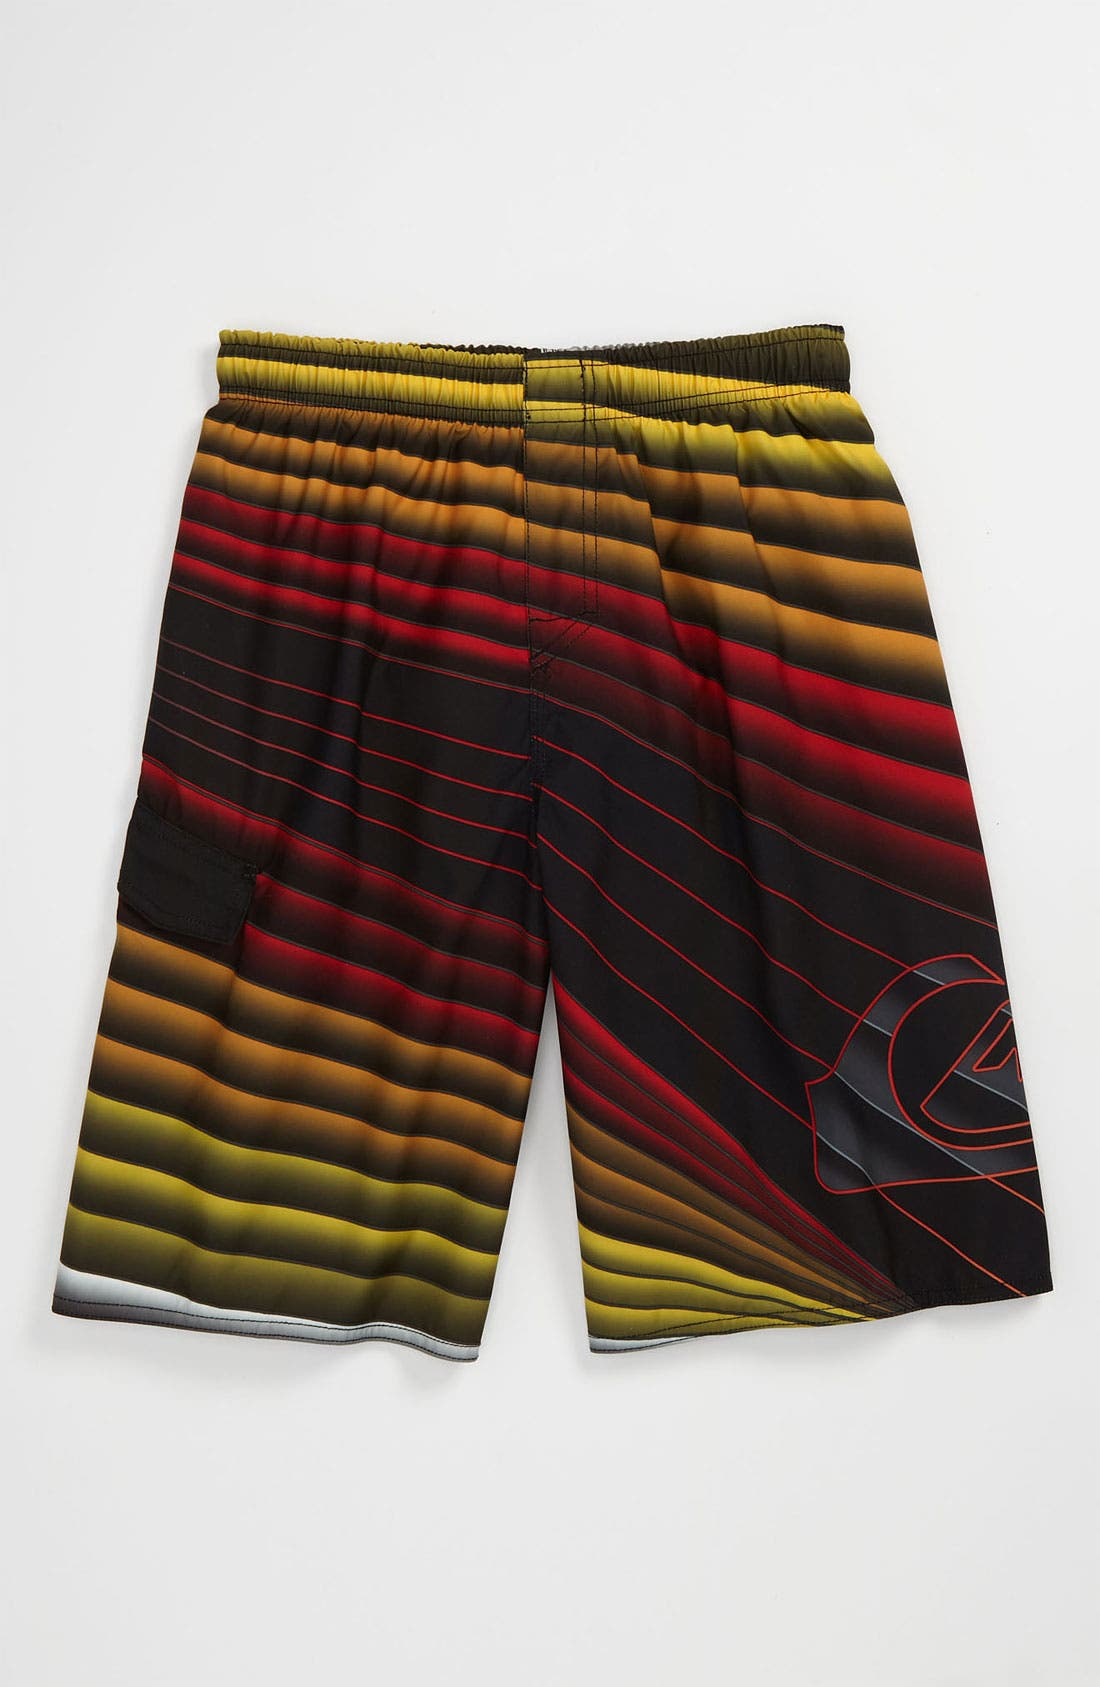 Alternate Image 1 Selected - Quiksilver 'Revival' Volley Shorts (Big Boys)